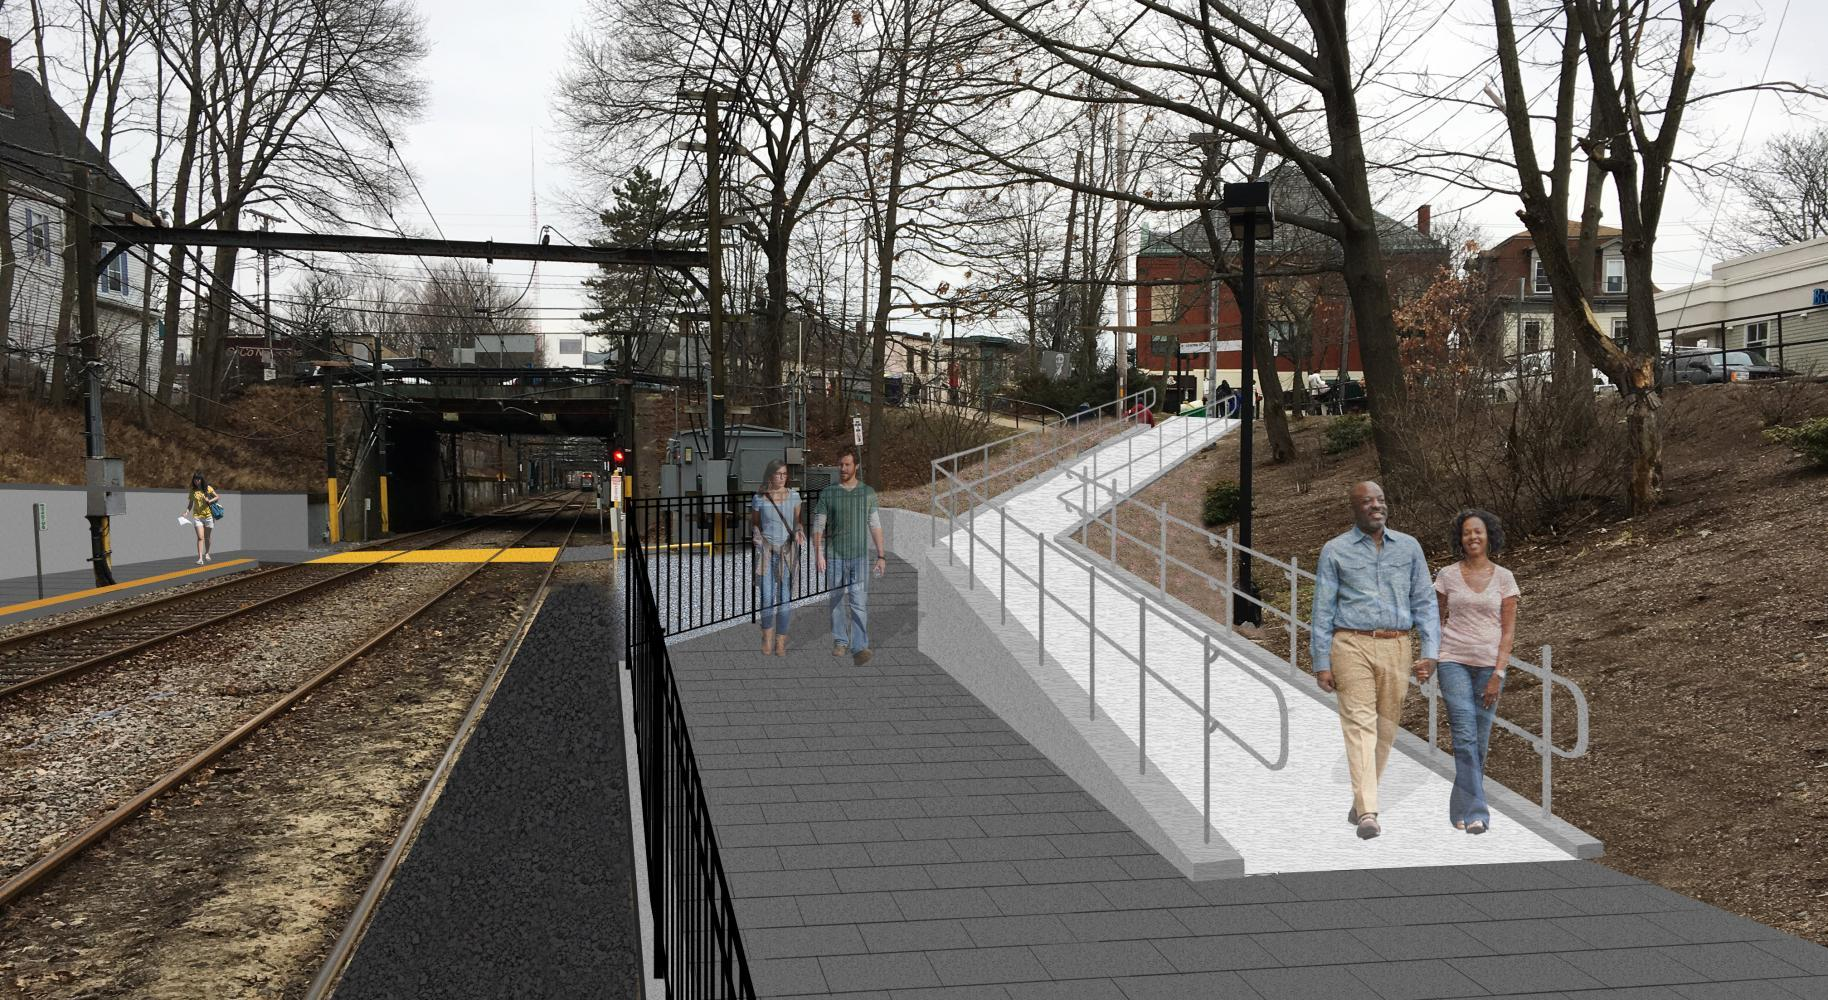 Rendering of the planned ramp from Walnut St to the platform below